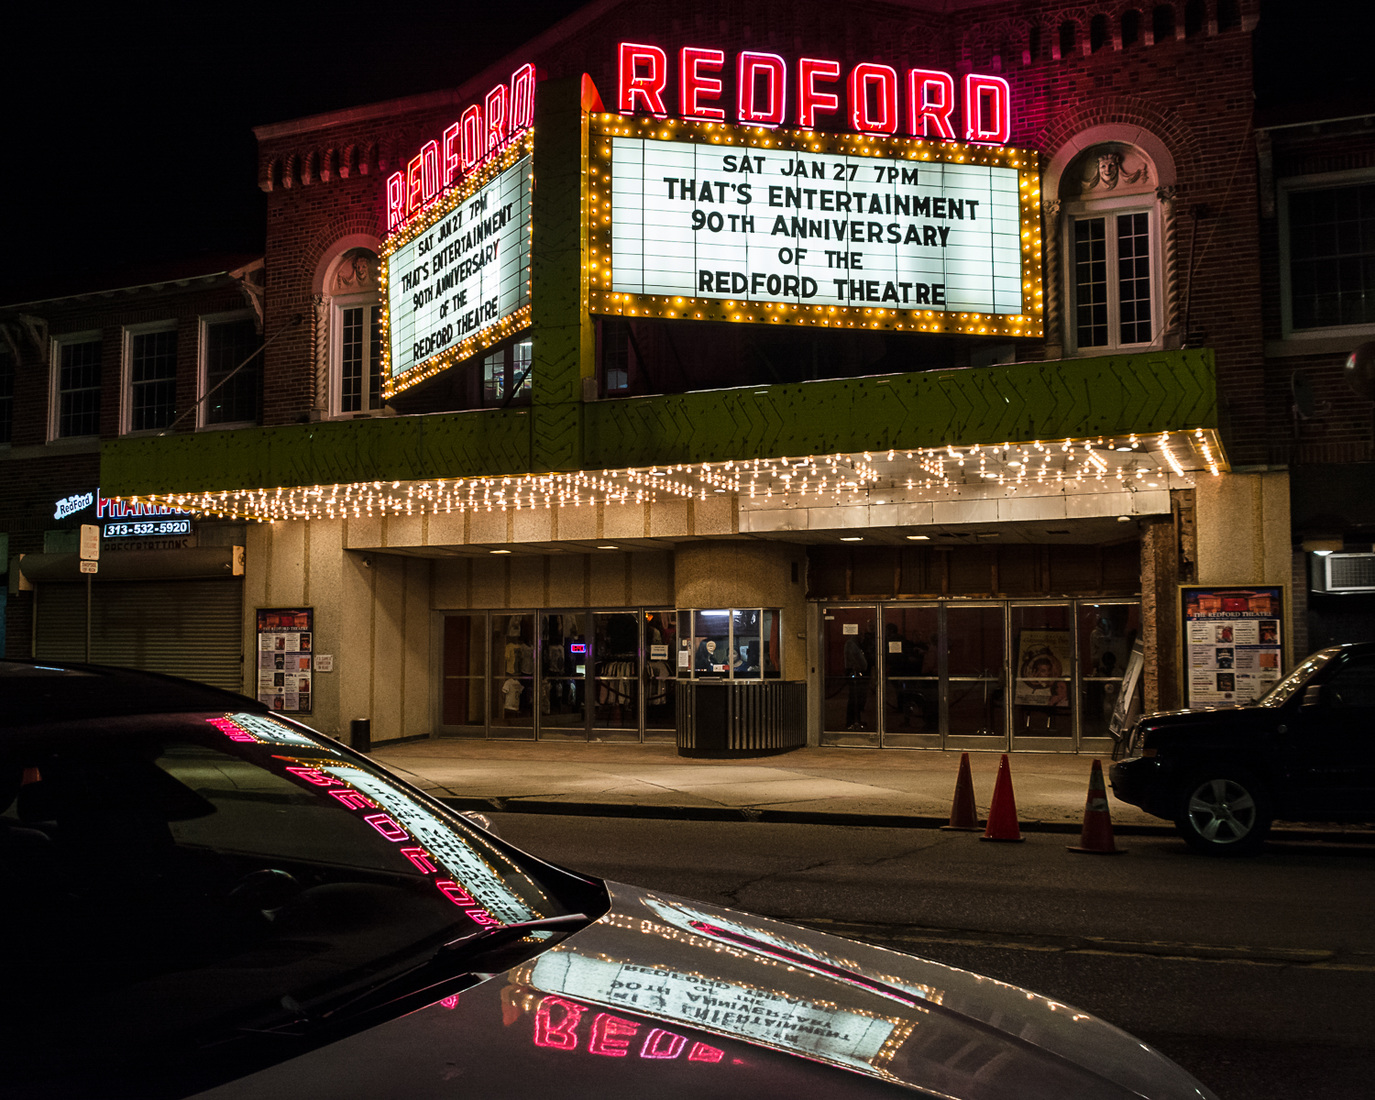 Theatres Redford Theatre 90th Anniversary